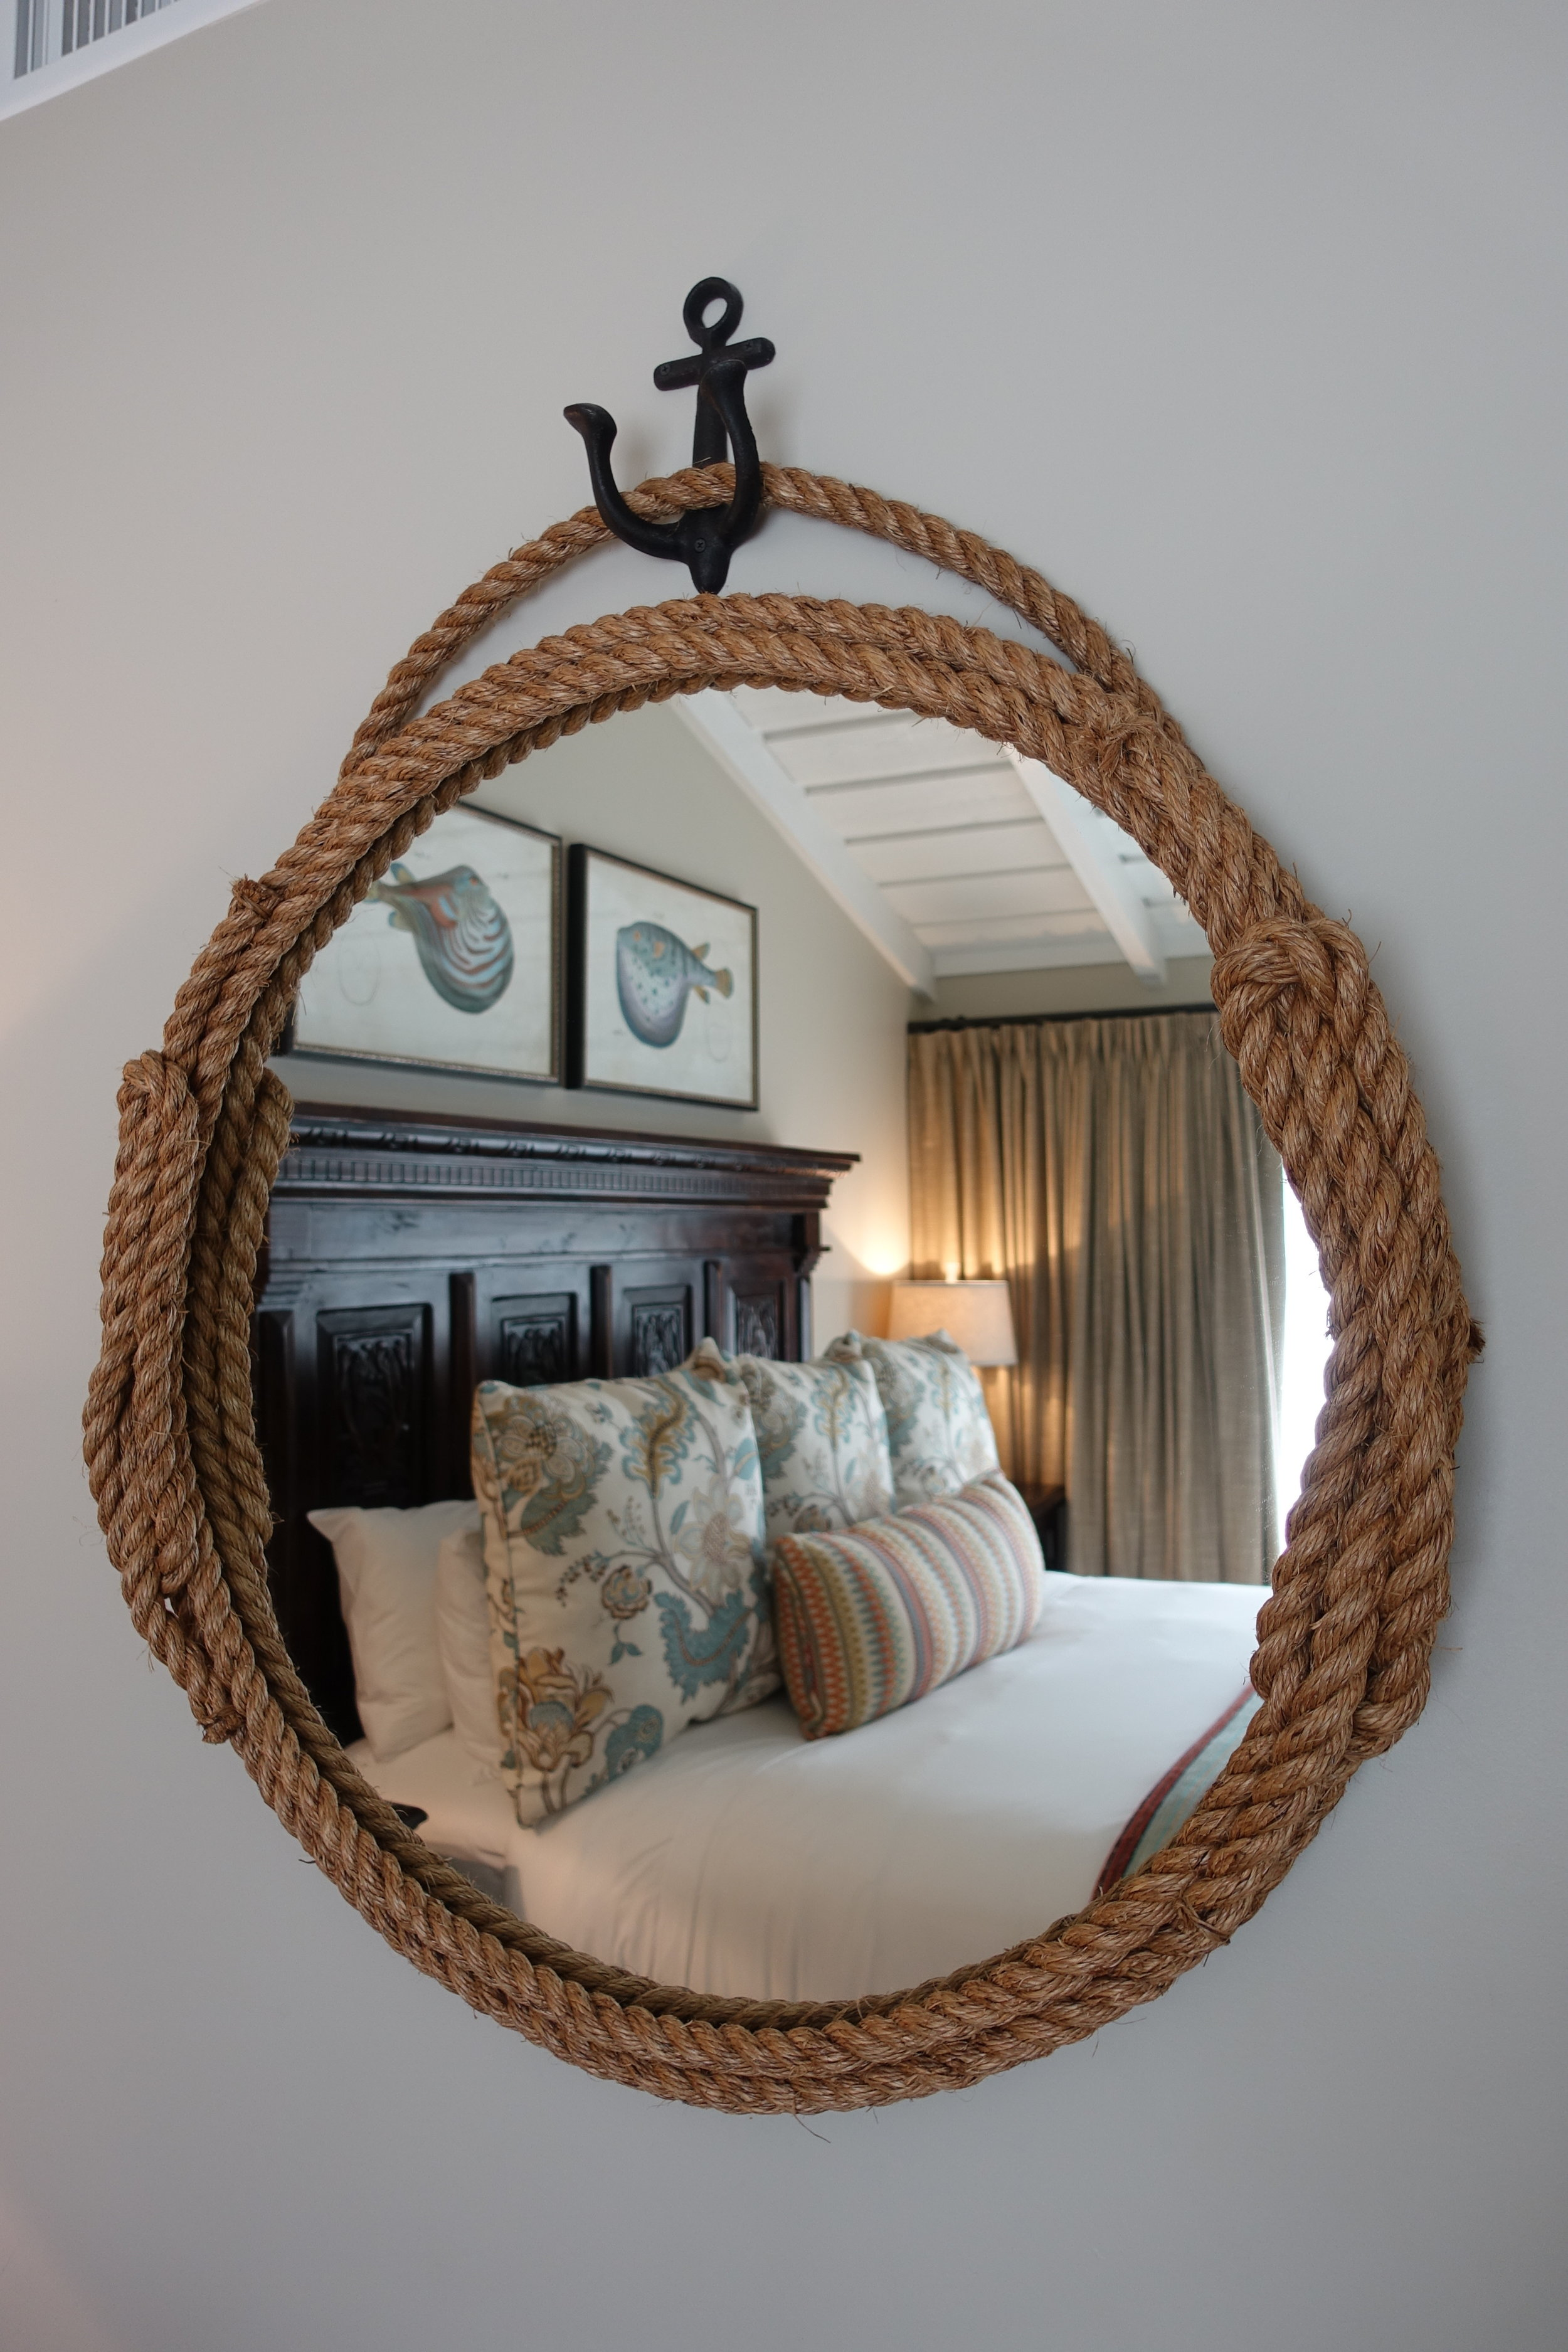 Bedrooms at Laguna Beach are all decorated in an elegant California coastal rustic style